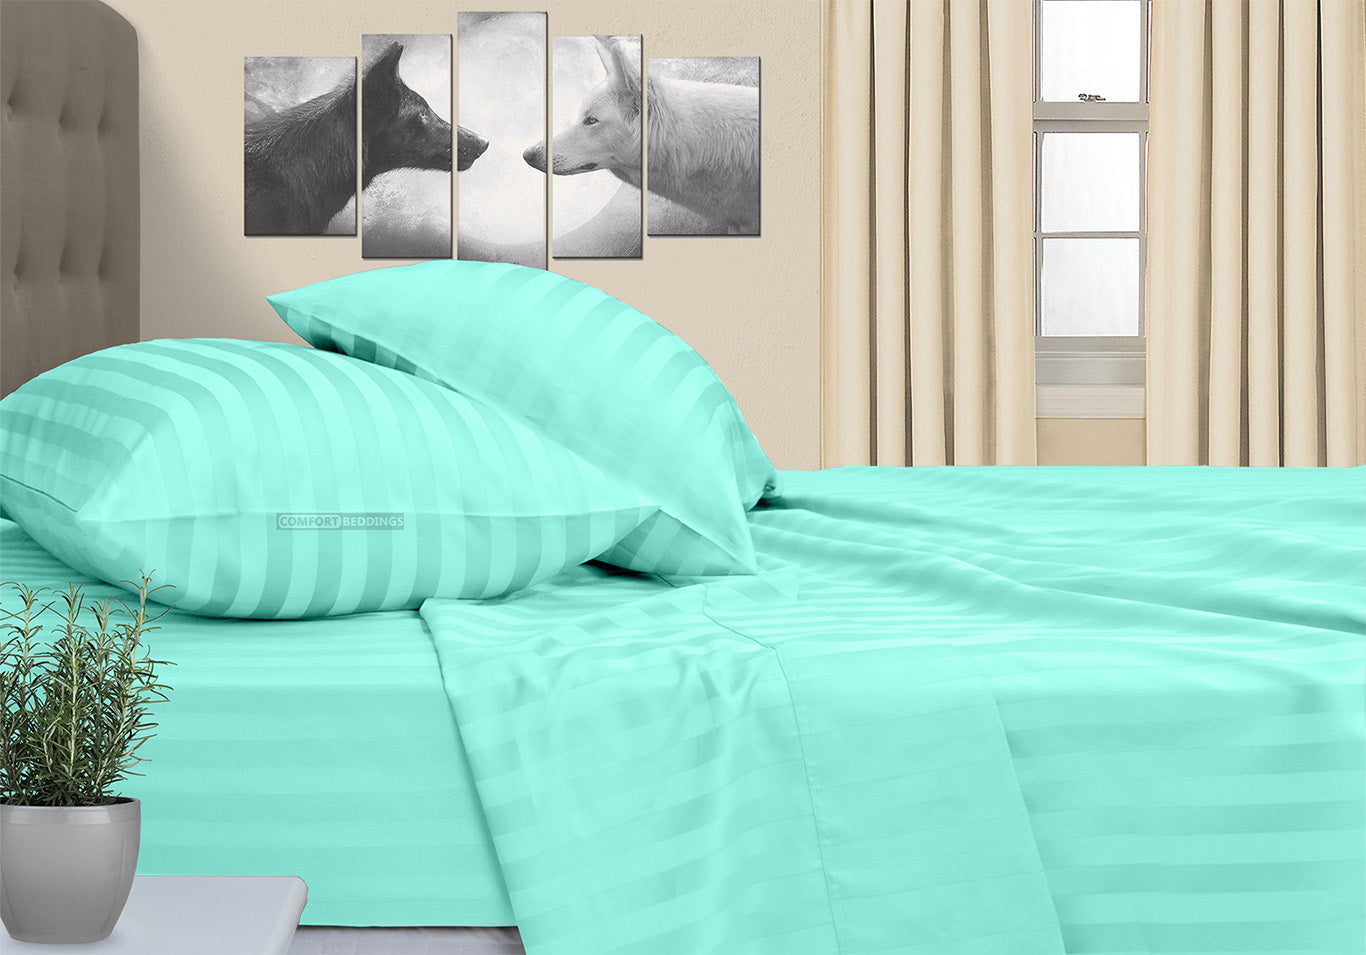 Luxurious Aqua Blue Striped RV Bunk Sheet Set